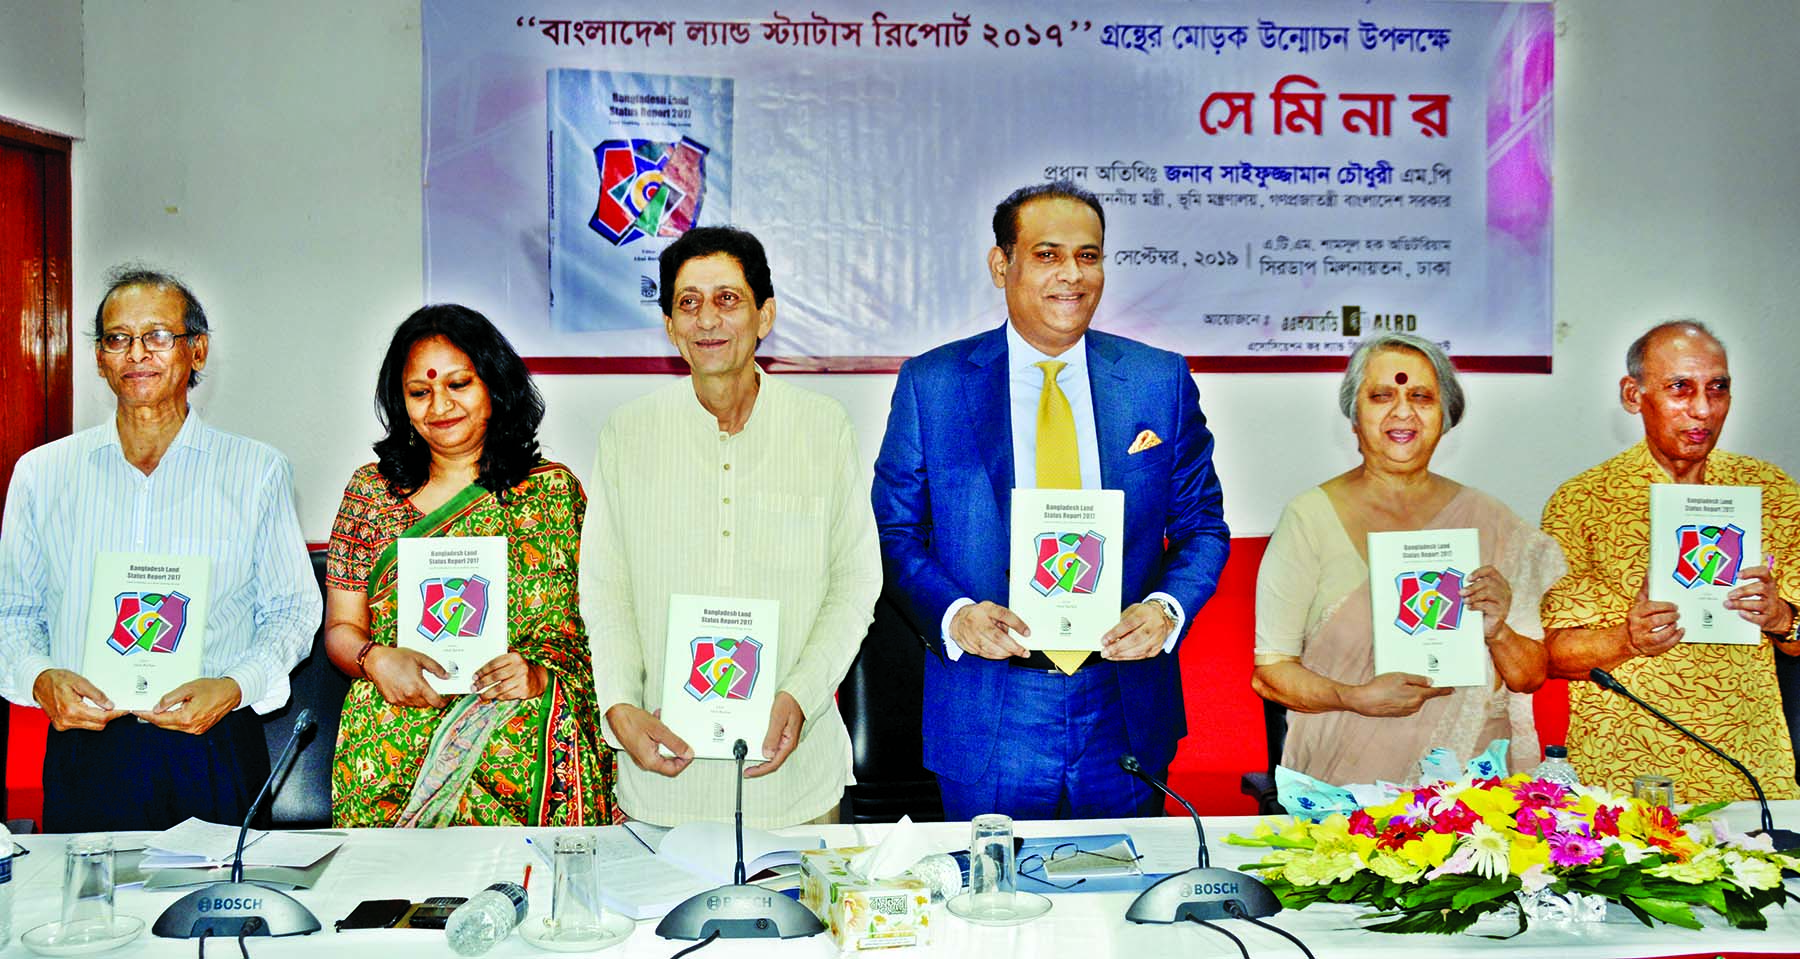 Land Minister Saifuzzaman Chowdhury along with others holds the copies of a book titled  'Bangladesh Land Status Report 2017' at its cover unwrapping ceremony organised by Association for Land Reform and Development in CIRDAP auditorium in the city on Wednesday.